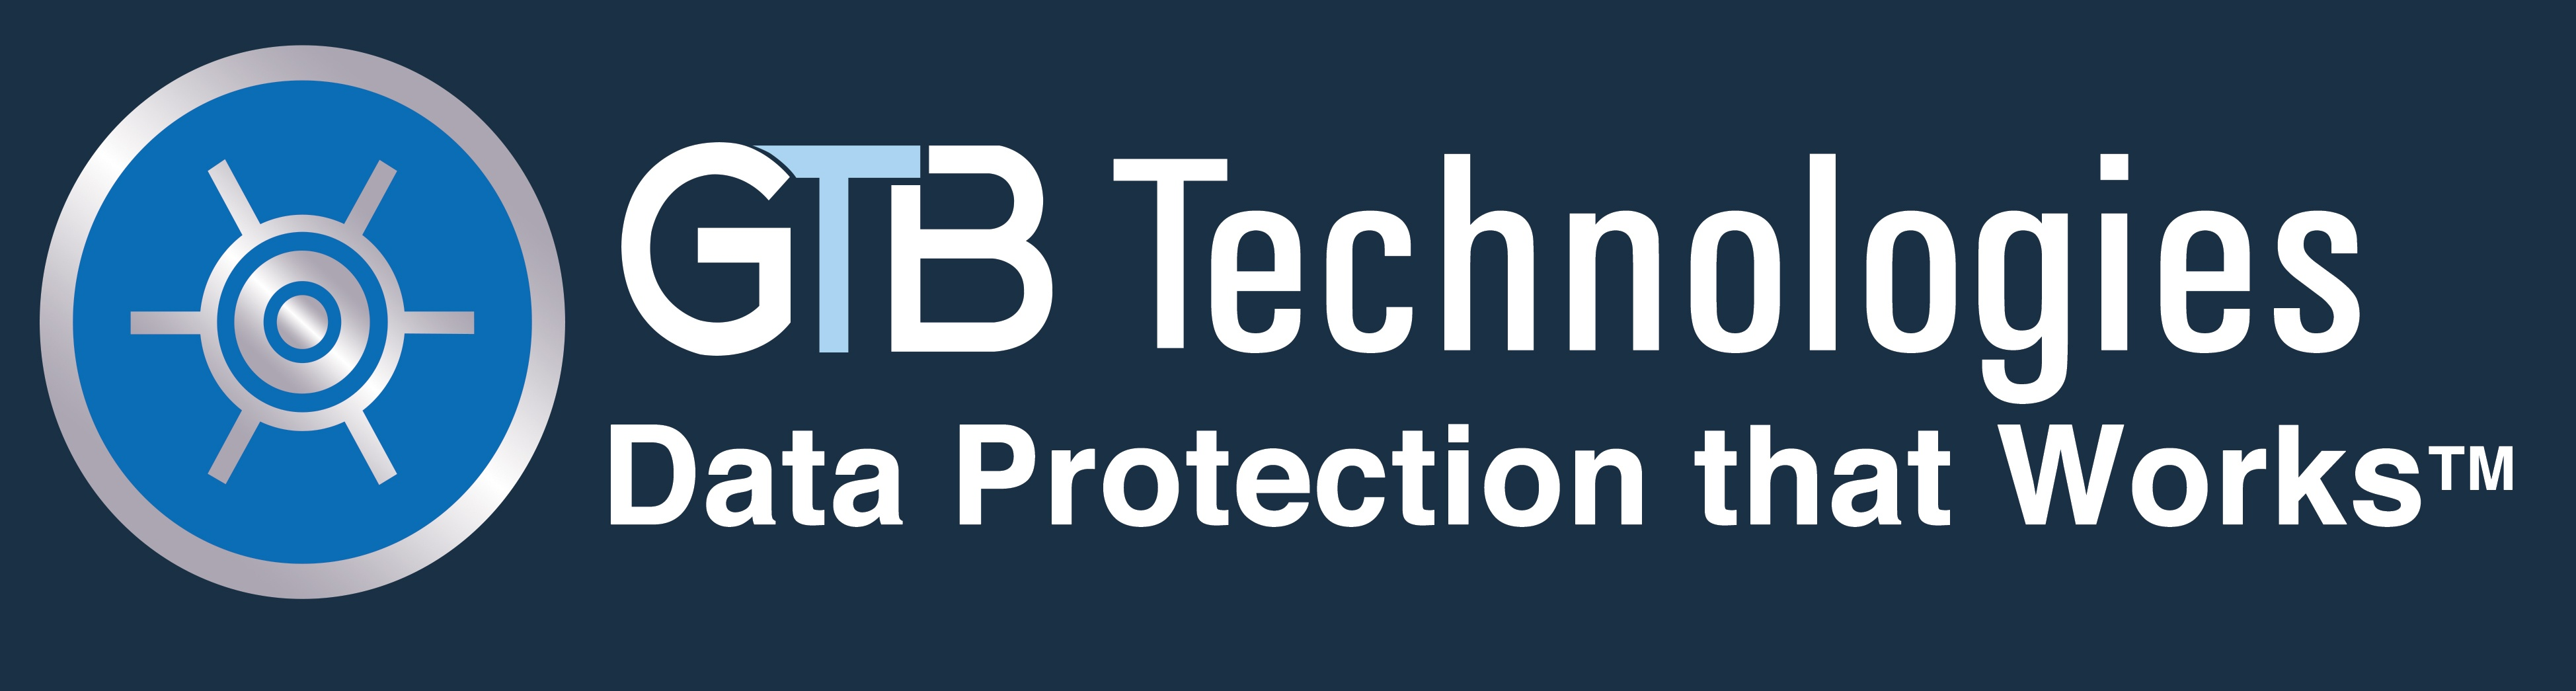 Leader DLP Data Protection GTB